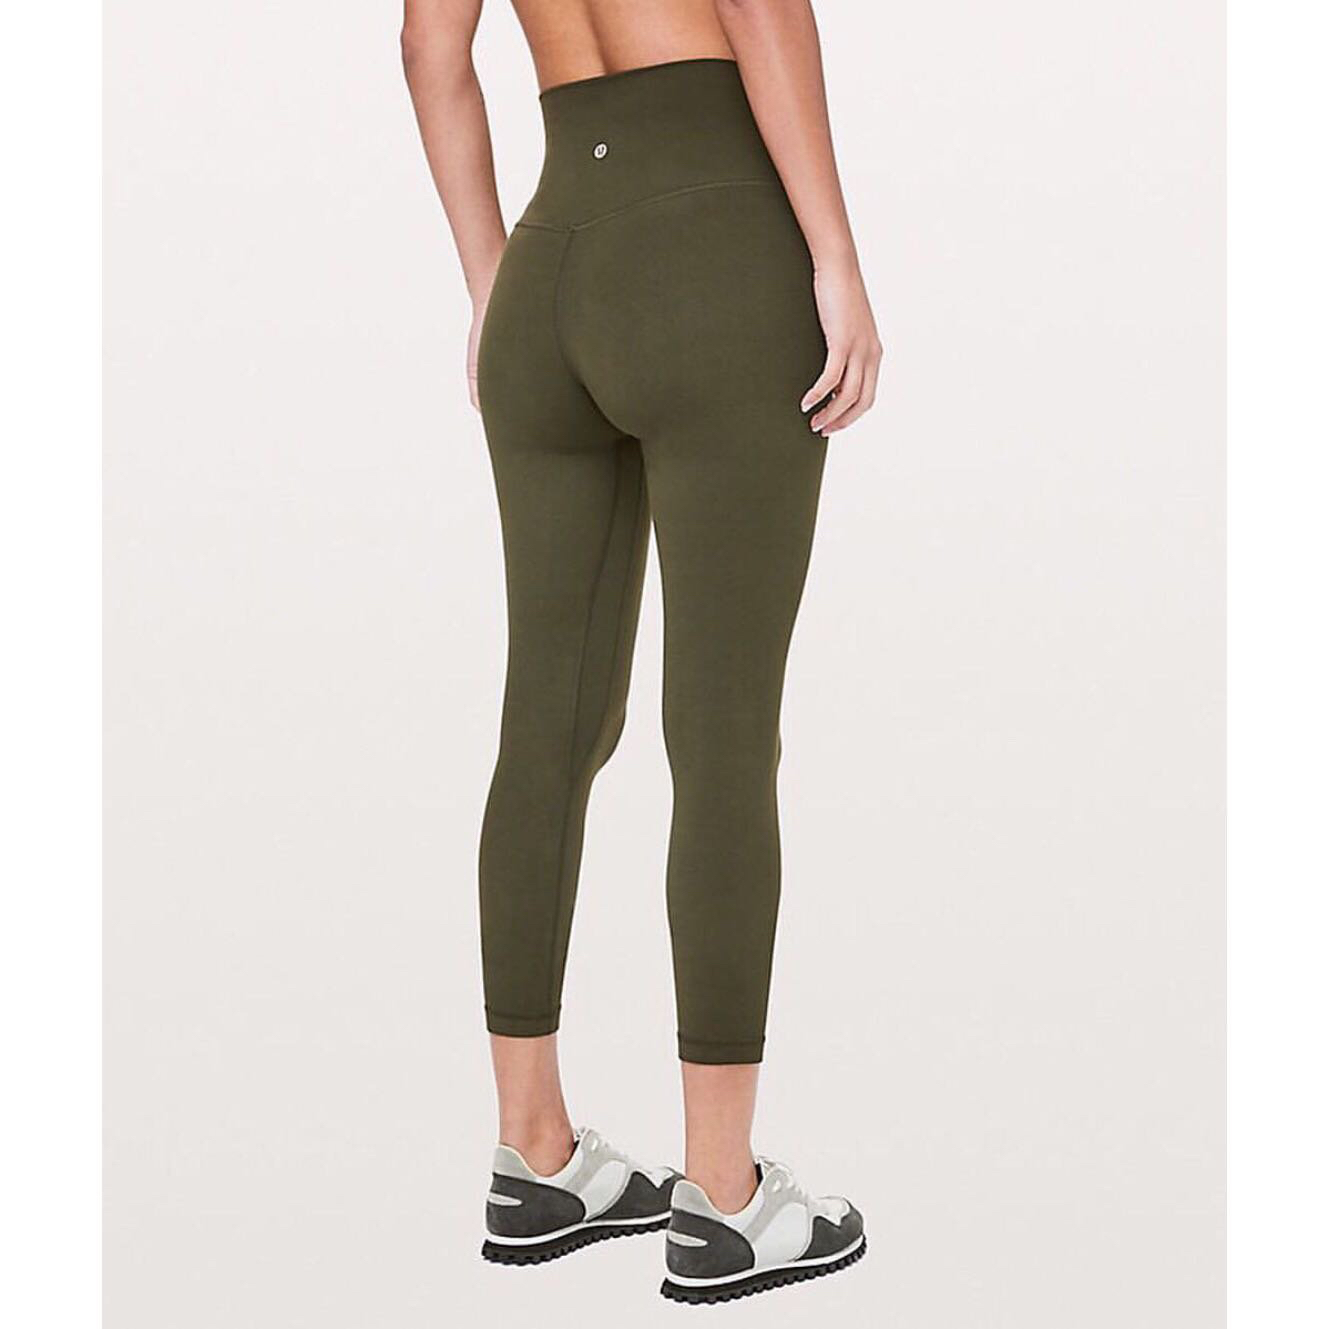 newest e0591 93fb4 NEW Lululemon Workout Leggings in Olive Green, Sports, Athletic   Sports  Clothing on Carousell